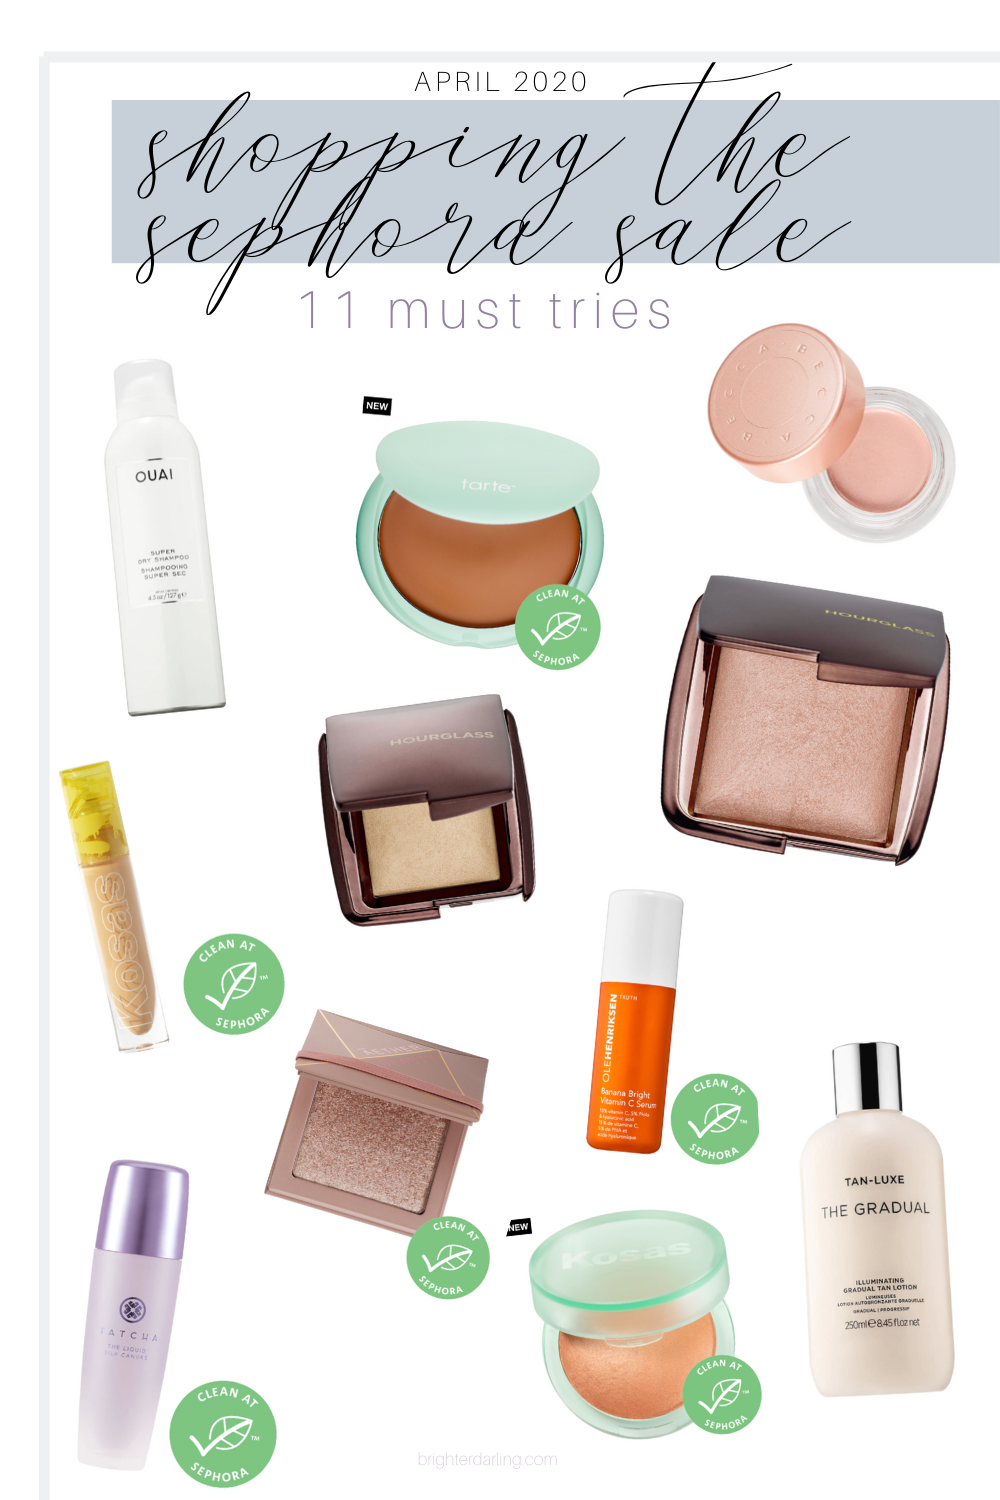 shopping the april 2020 sephora sale | clean beauty recommendations | brighter darling